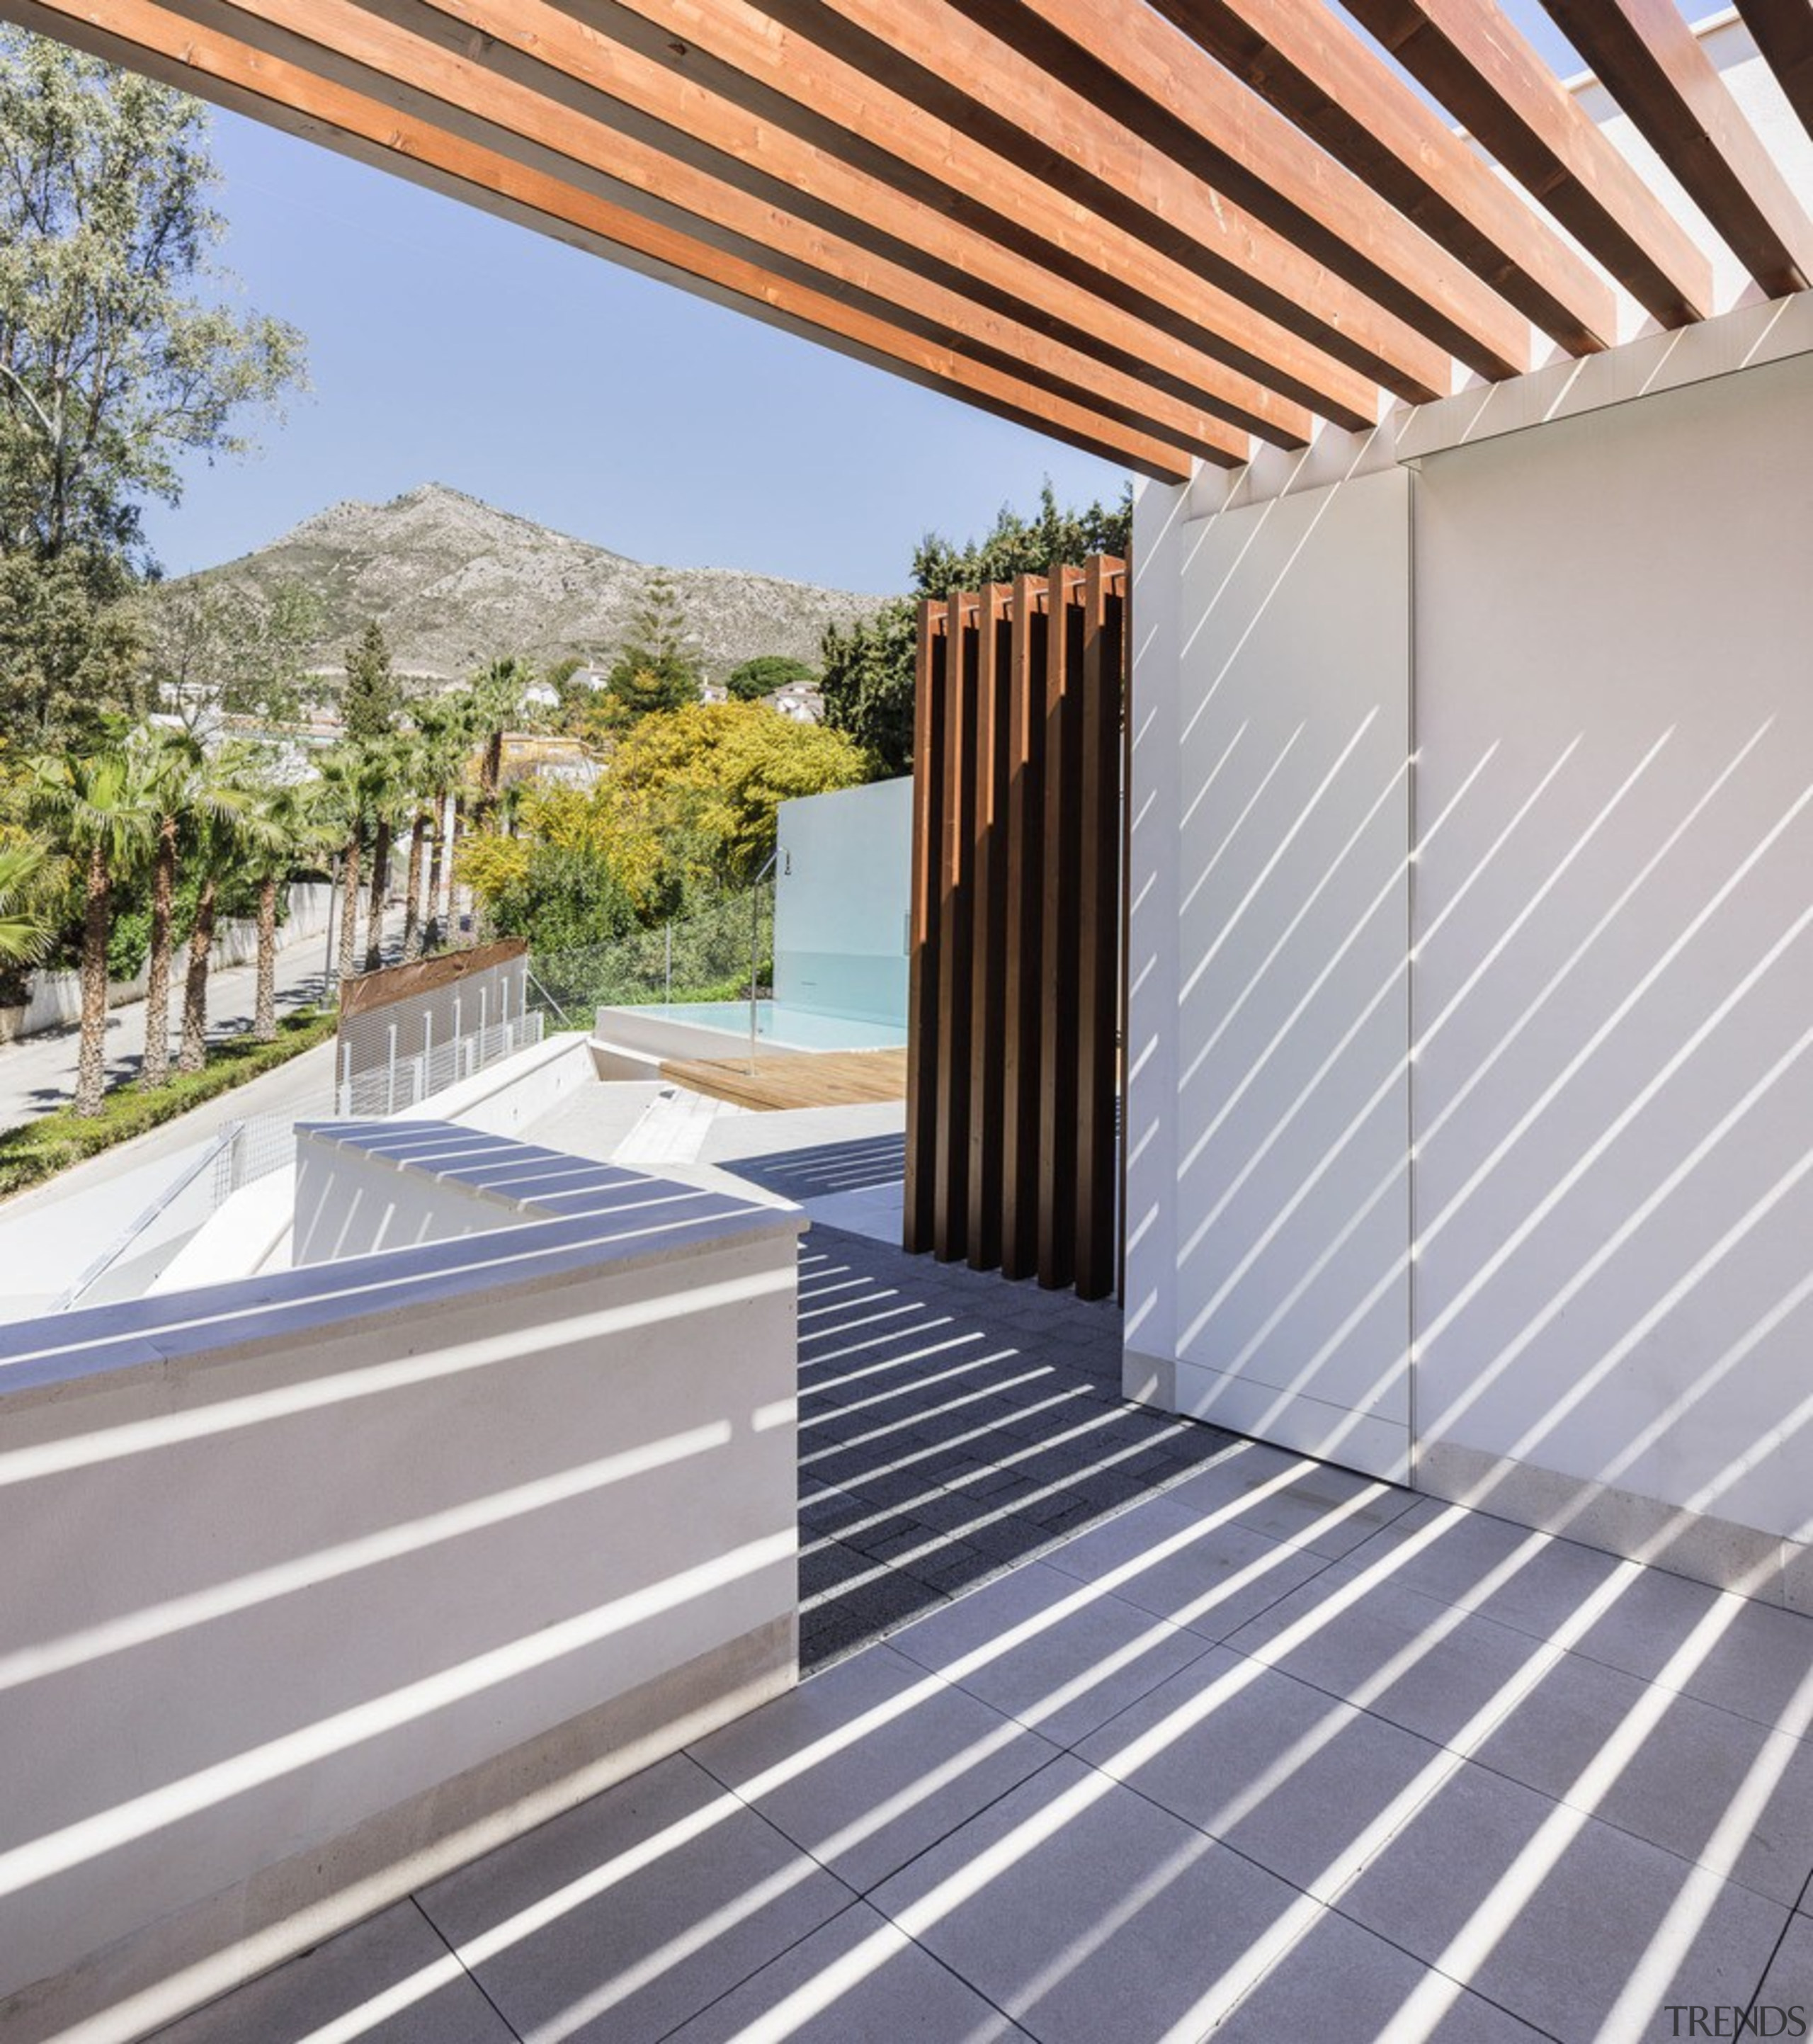 Looking out to the pool - architecture   architecture, daylighting, facade, house, outdoor structure, property, real estate, roof, window, gray